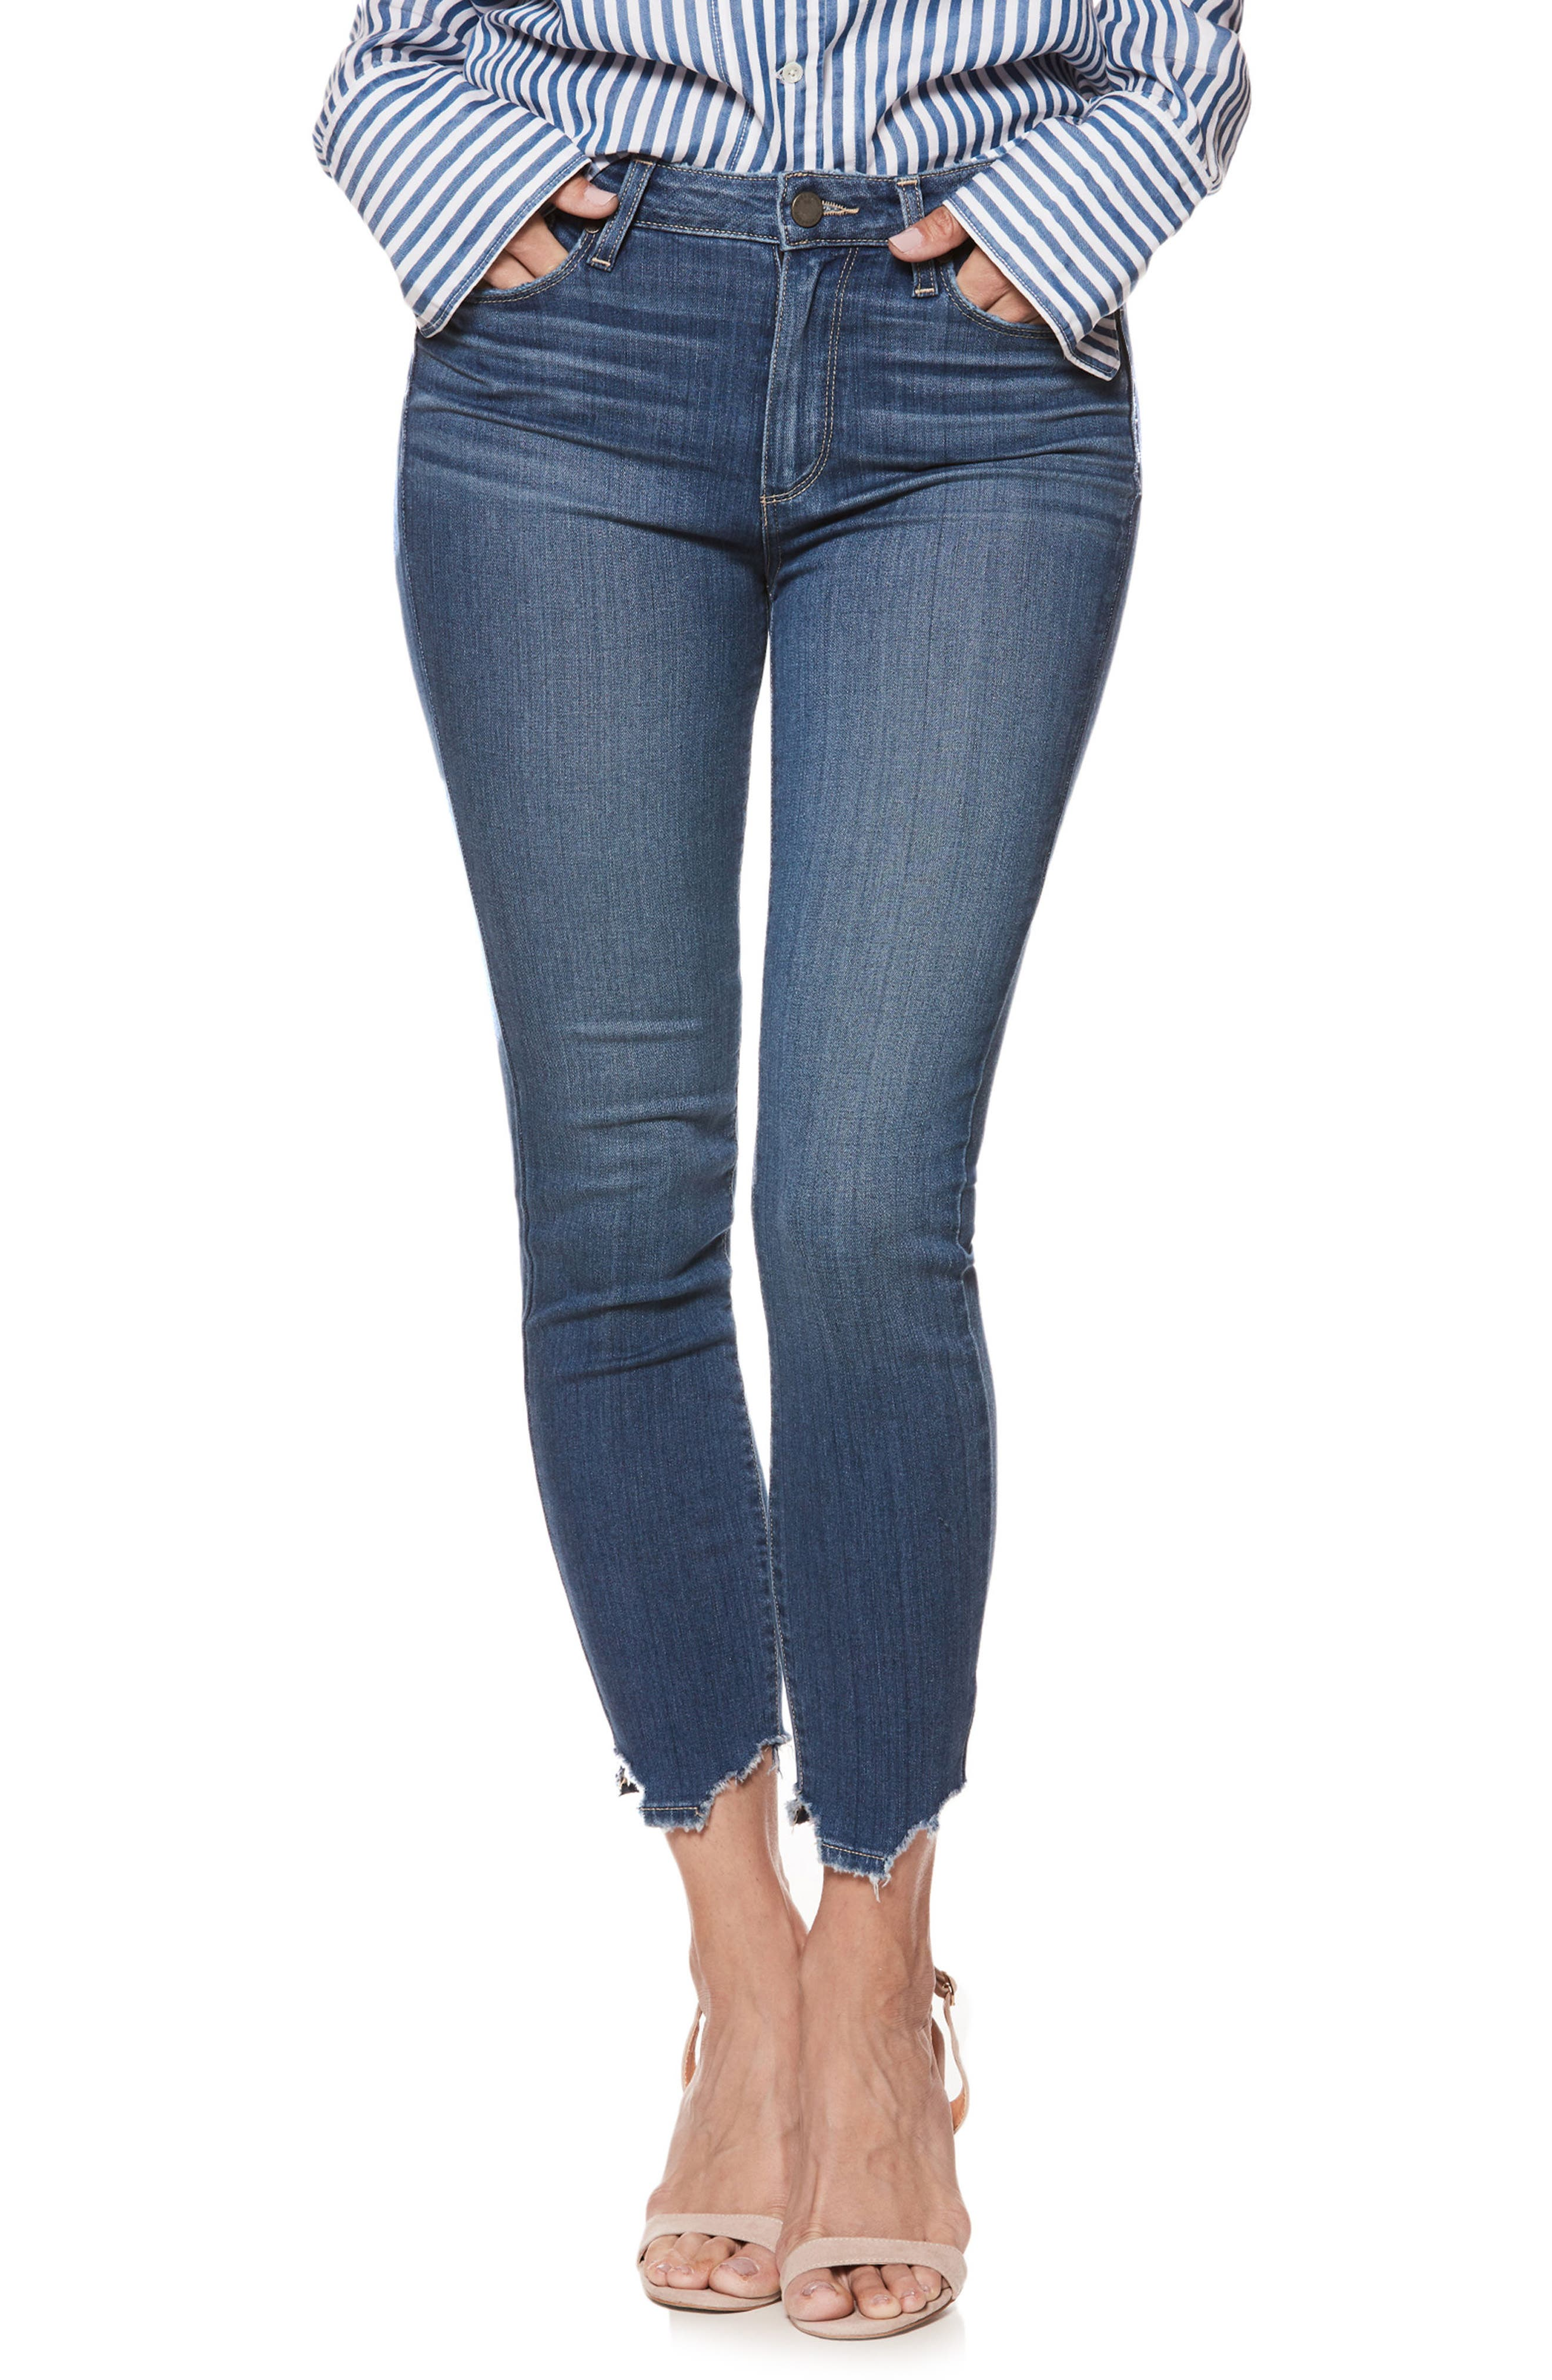 Transcend - Hoxton High Waist Crop Skinny Jeans,                         Main,                         color, Lived In Henderson